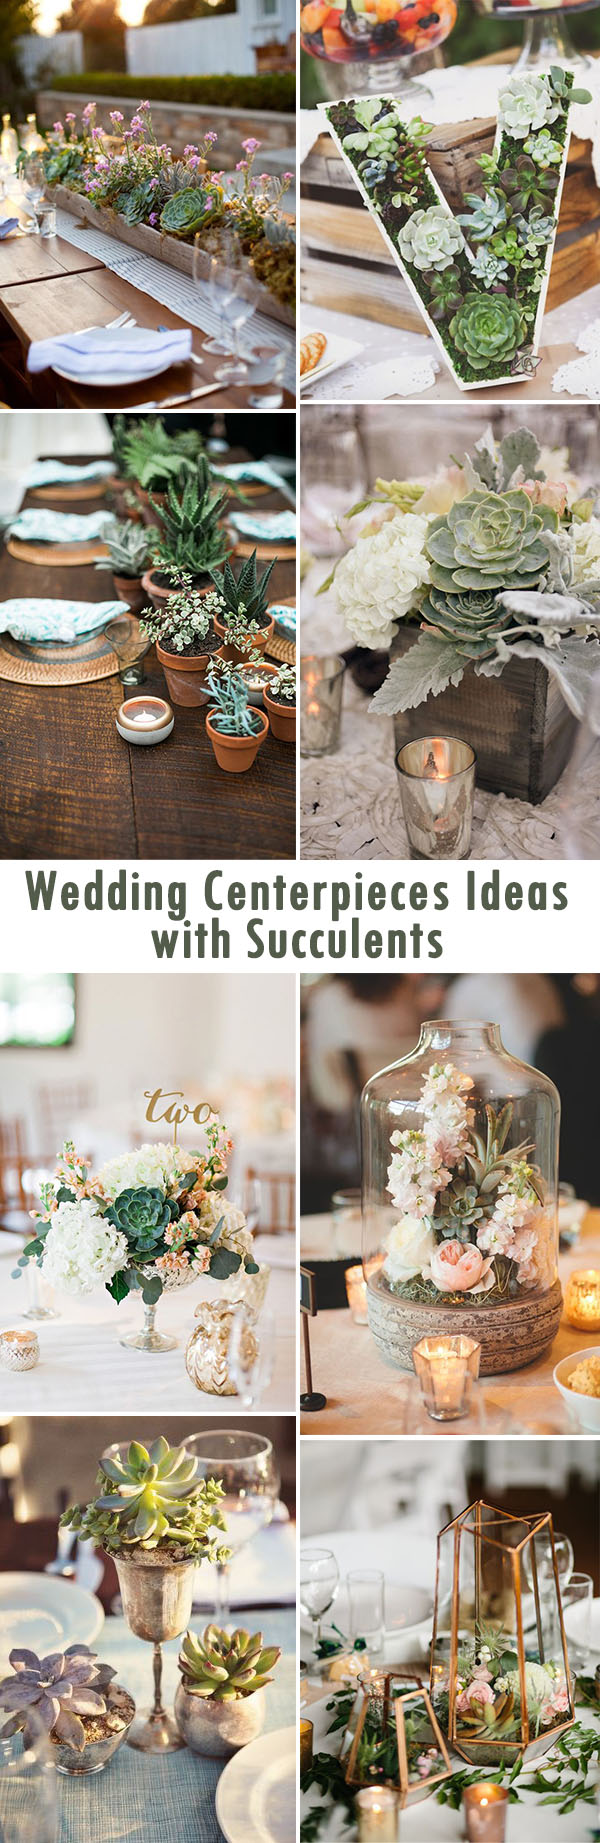 Diy wedding centerpieces ideas with succulents